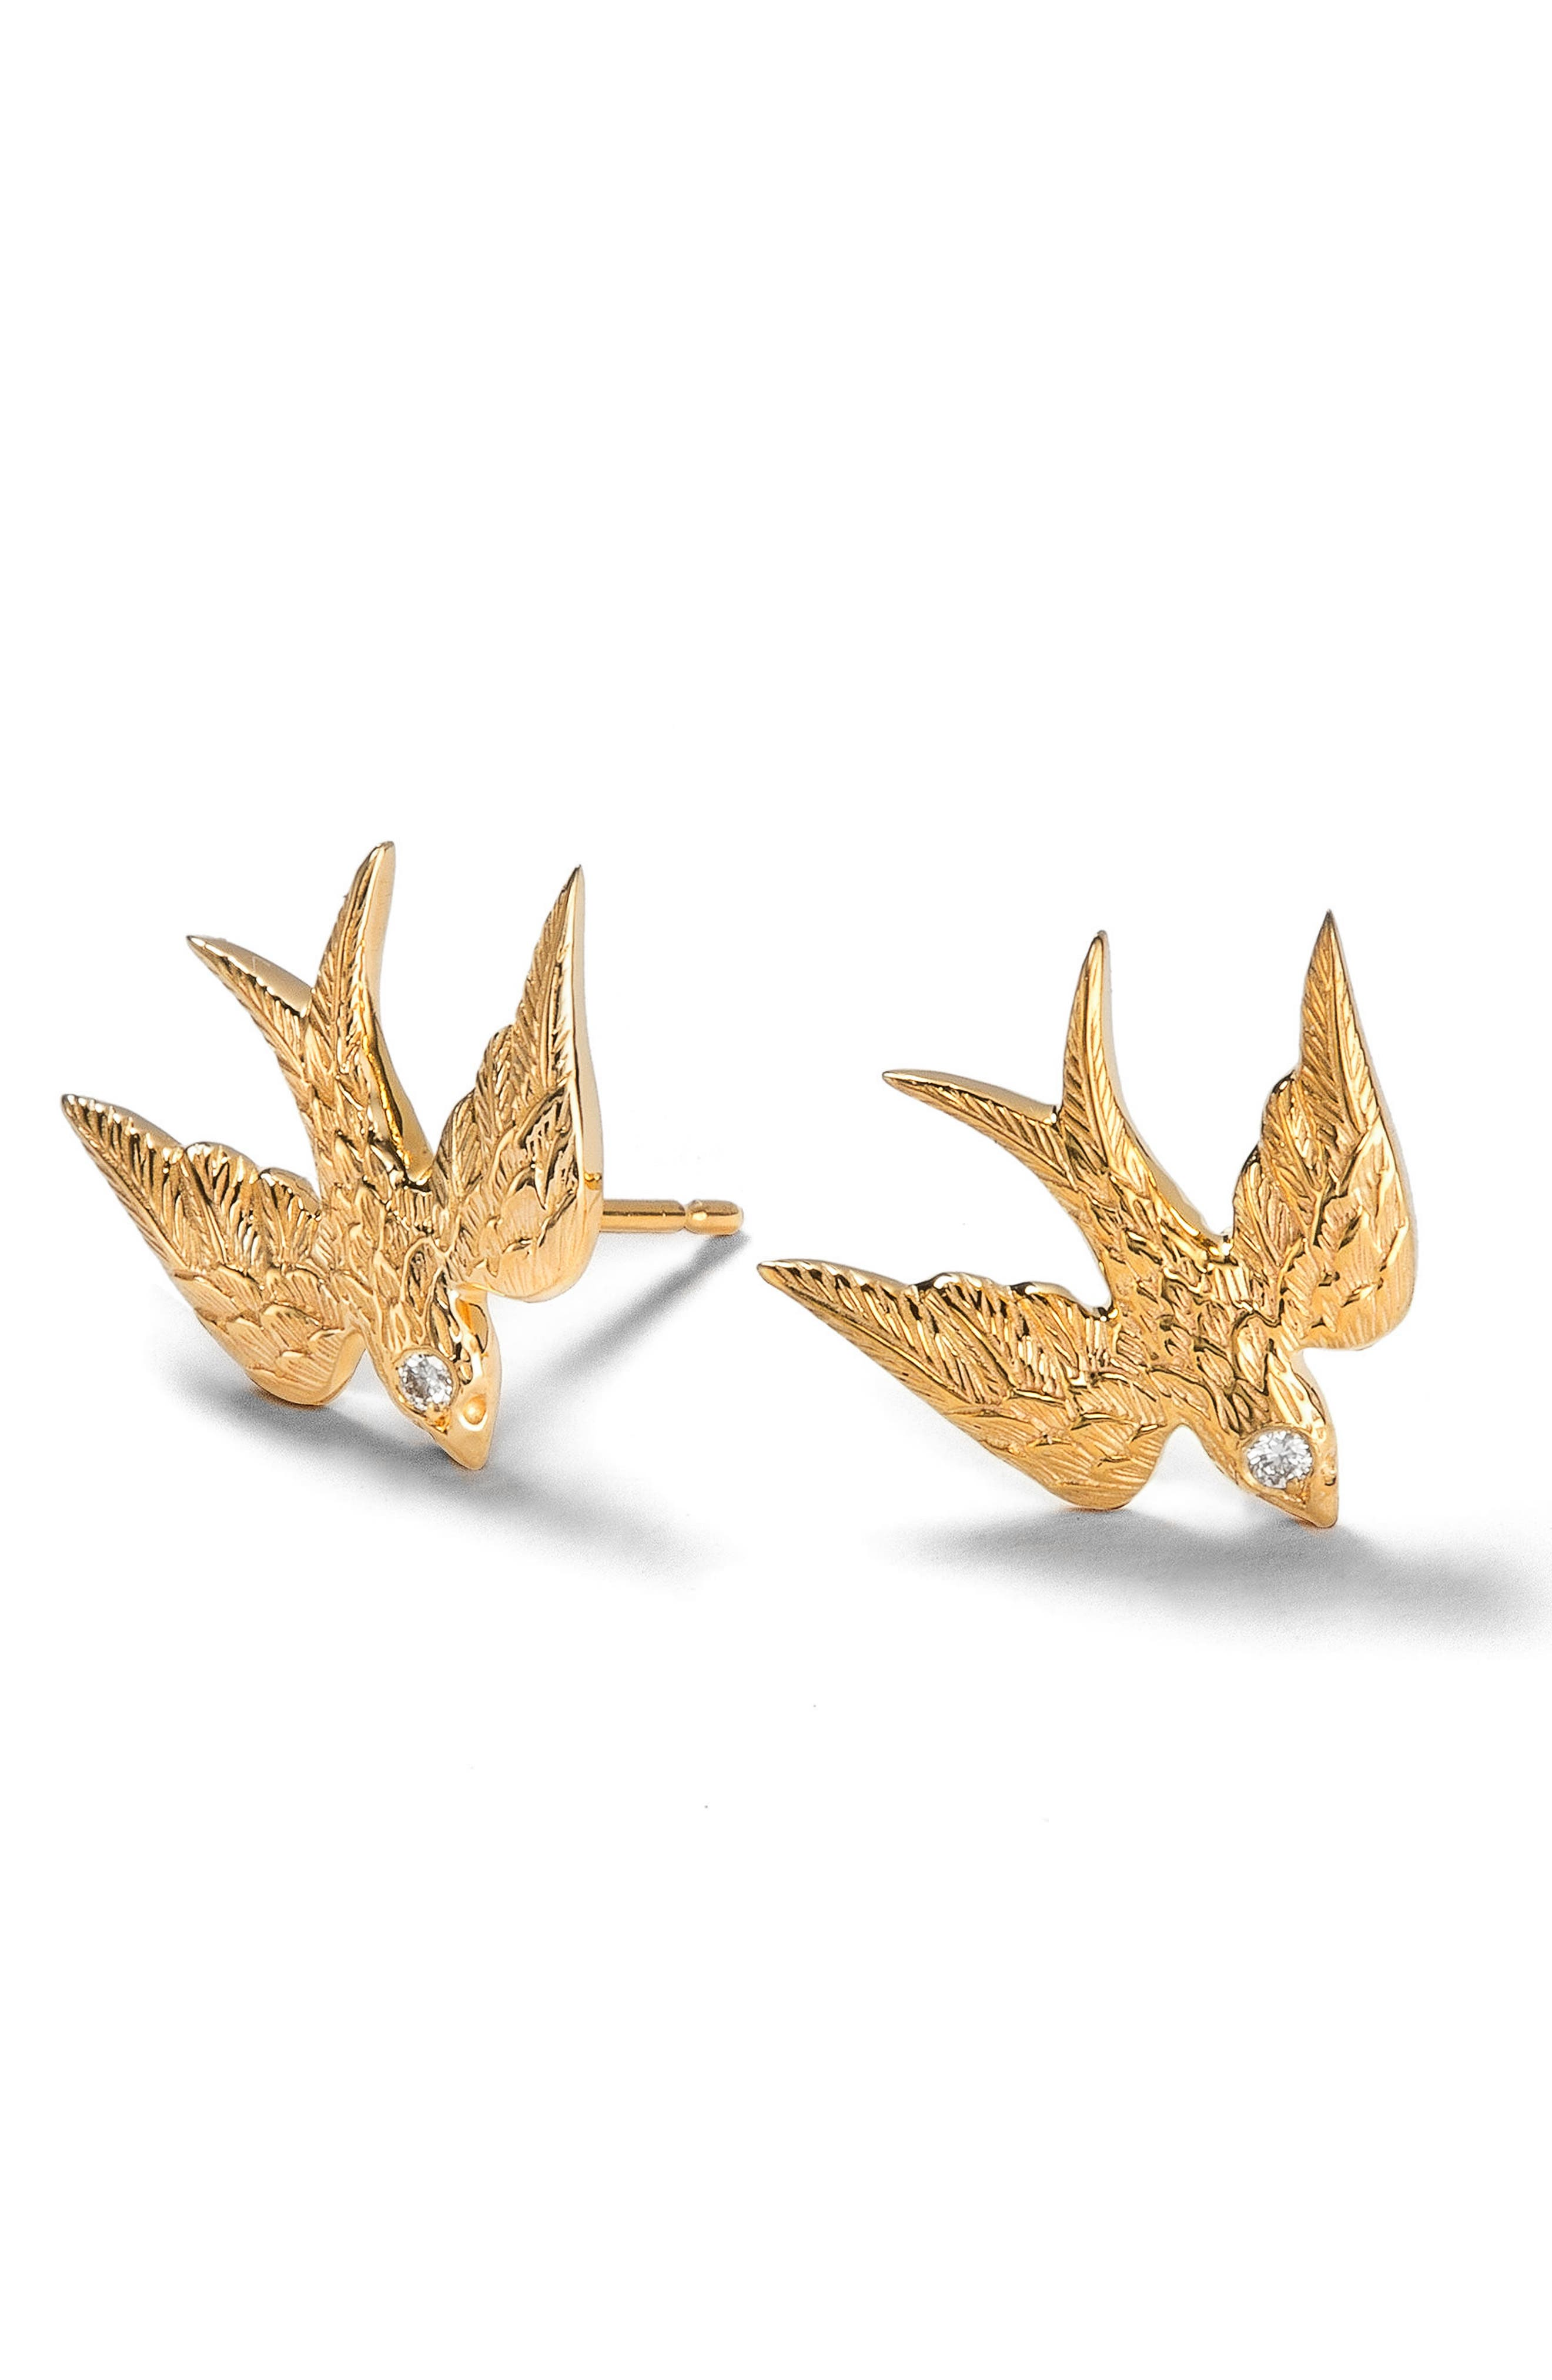 Feathered Diamond Swallow Stud Earrings,                             Main thumbnail 1, color,                             YELLOW GOLD